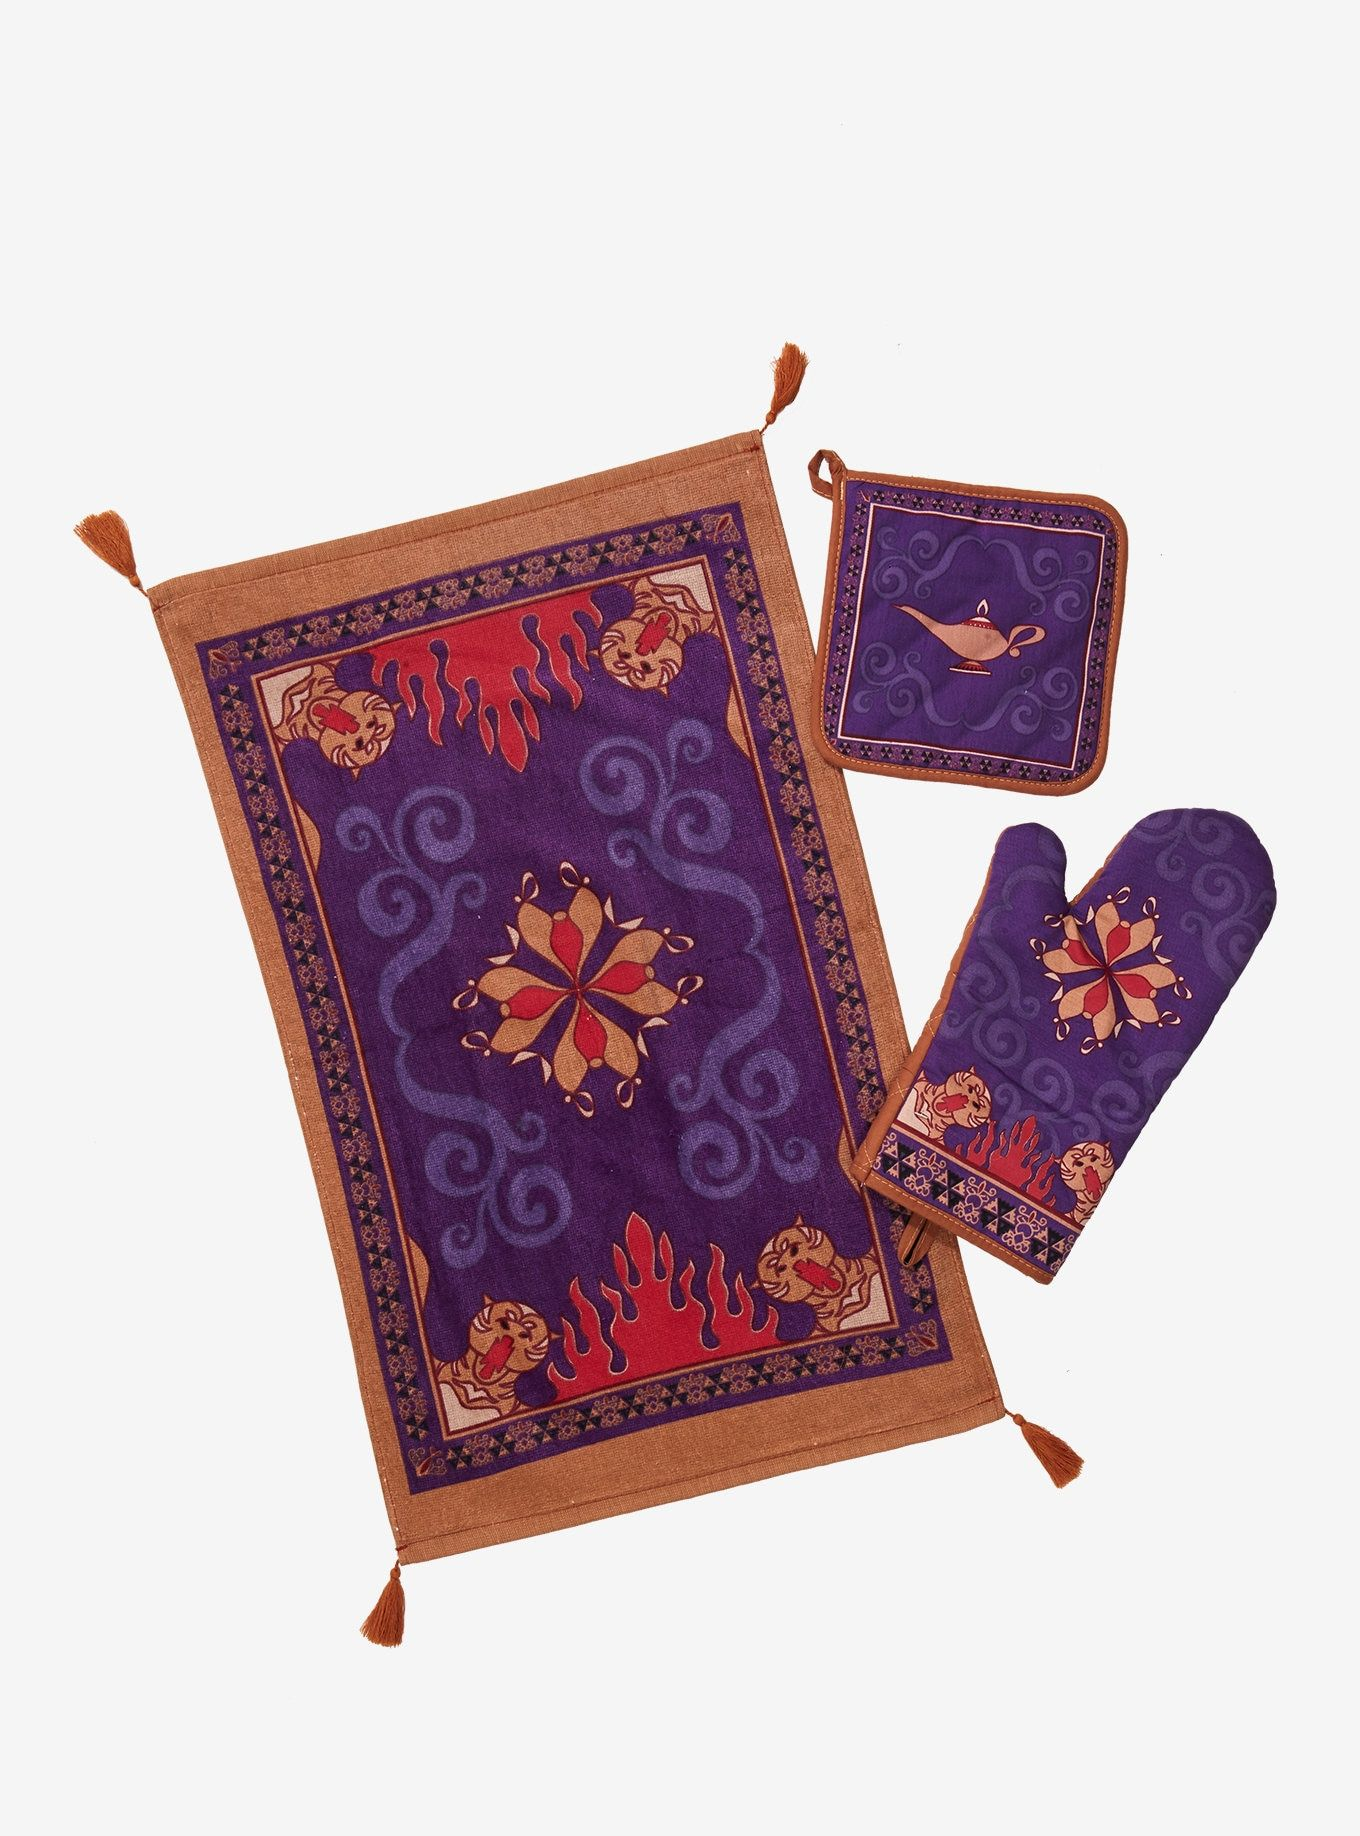 Disney Aladdin Magic Carpet Oven Mitt Dish Towel Set Aladdin Magic Carpet Magic Carpet Dish Towel Set